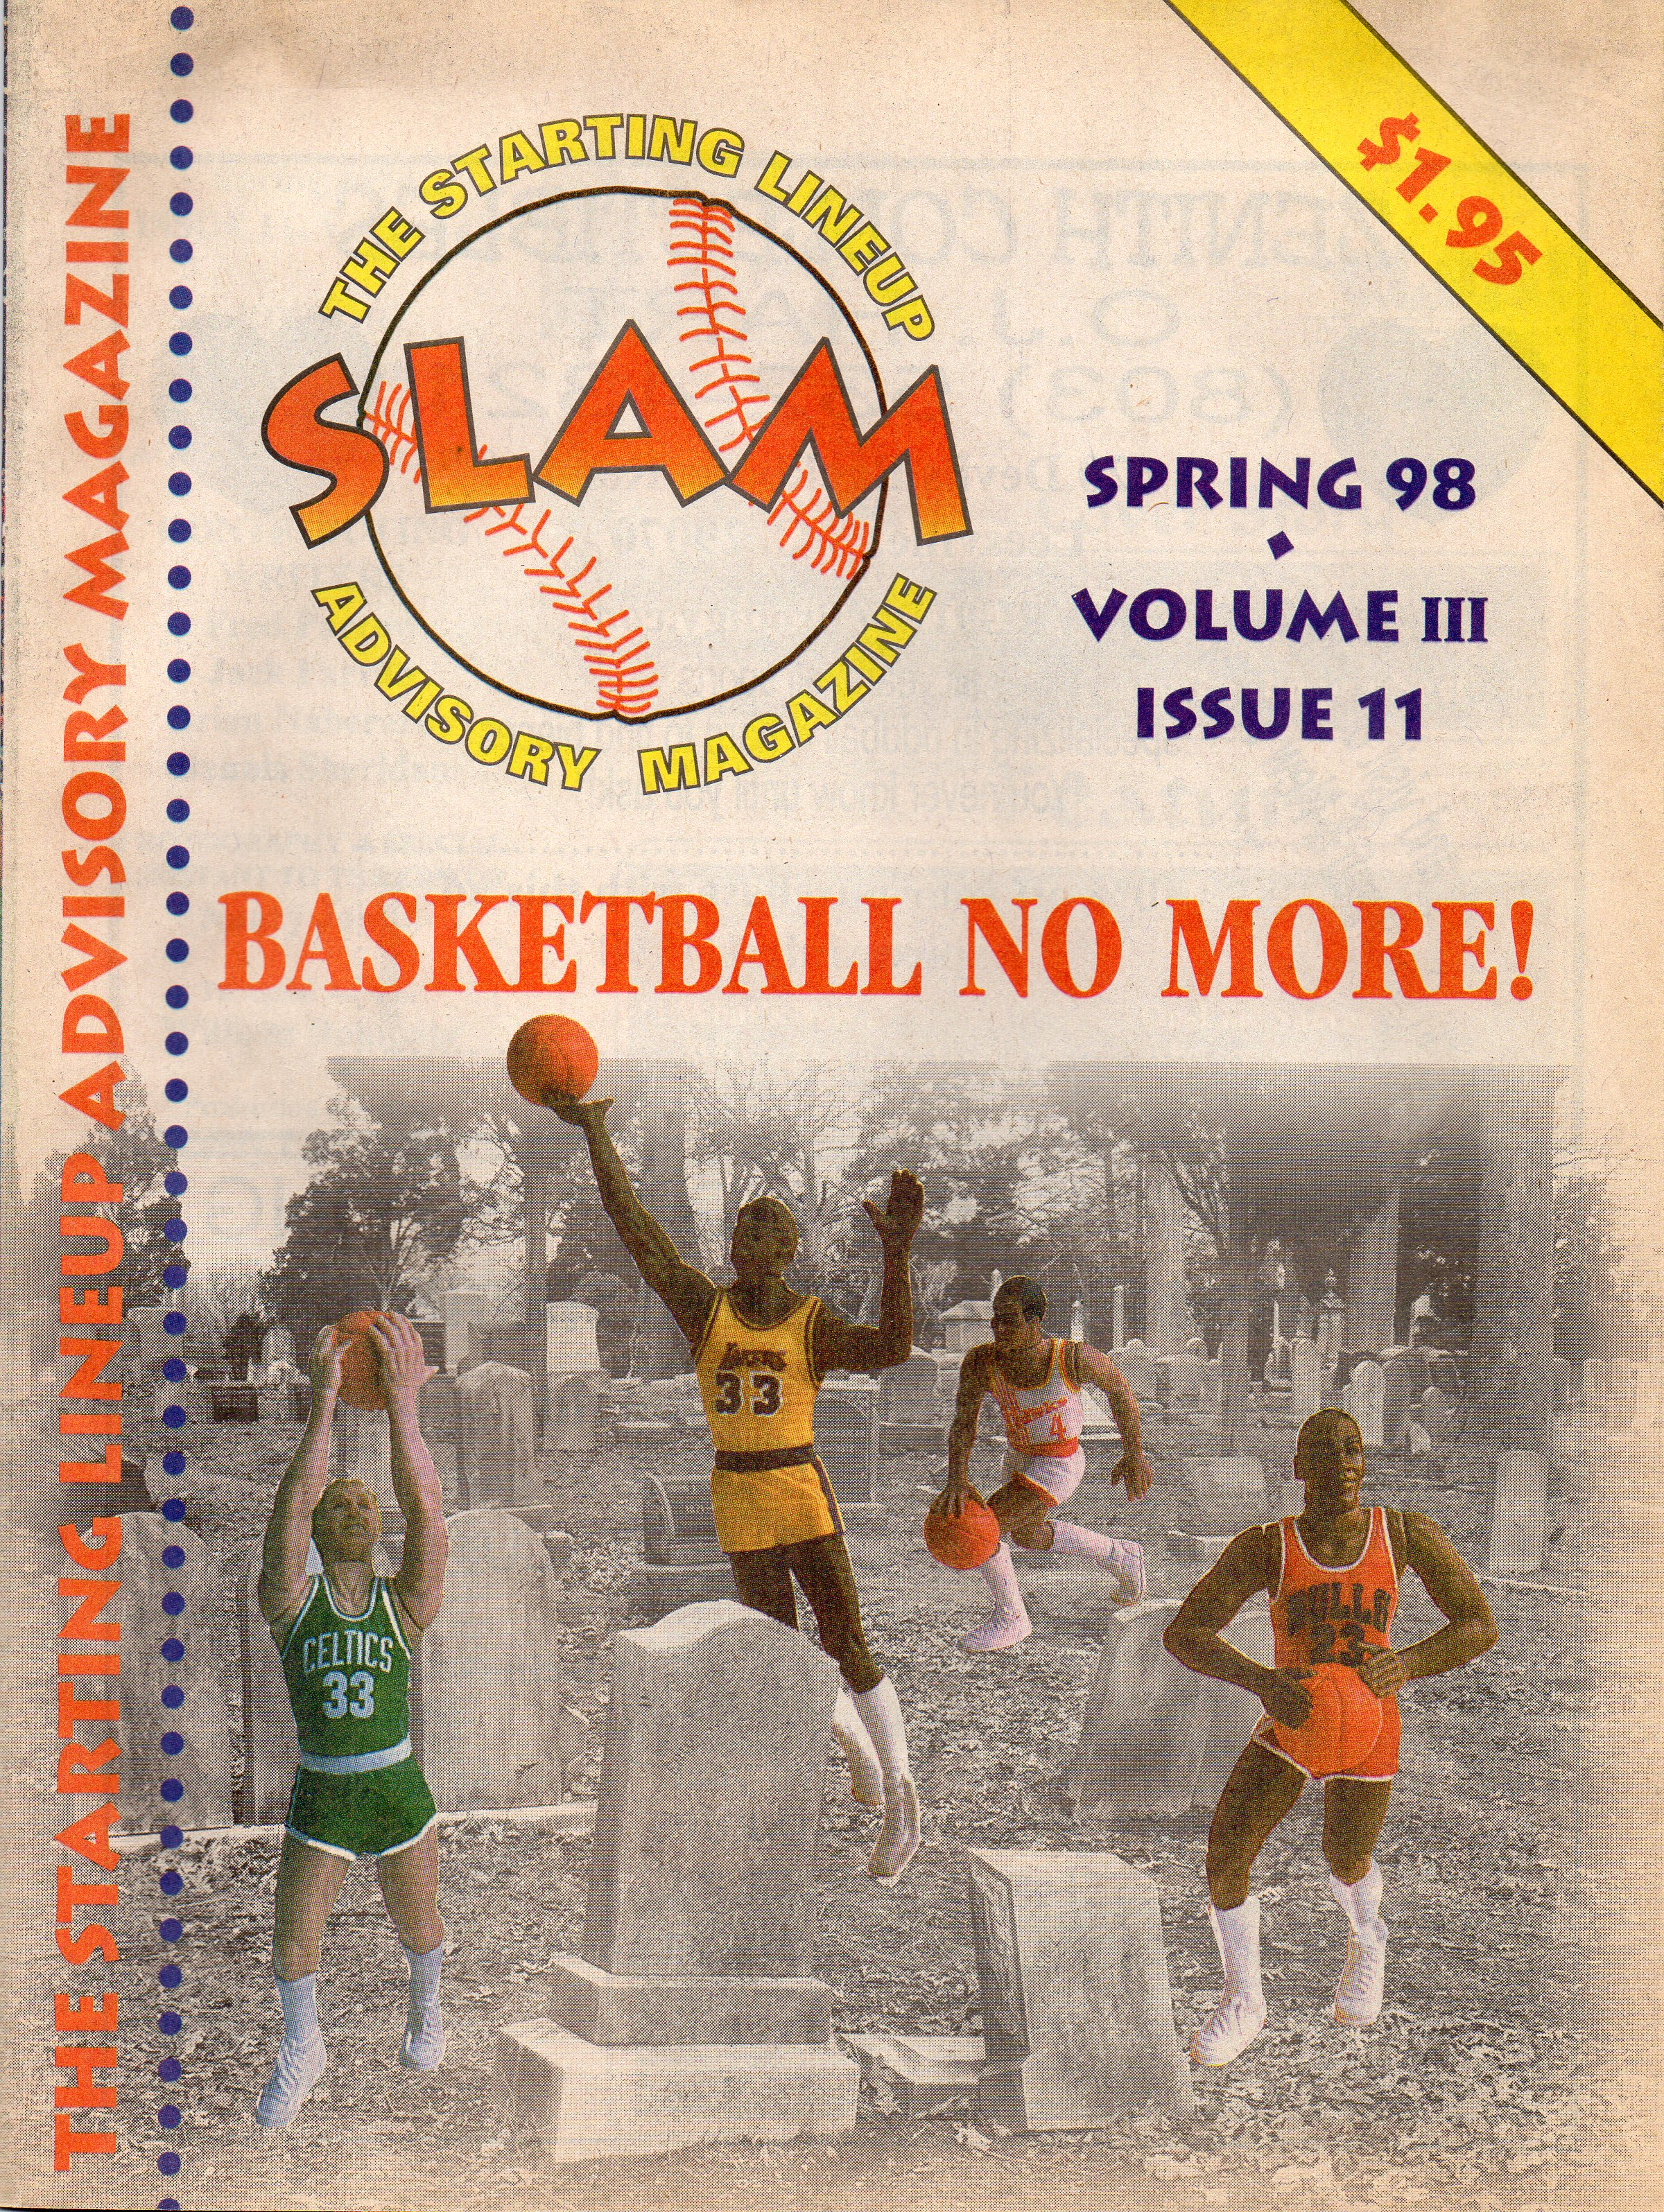 Who Misses S.L.A.M. Magazine?